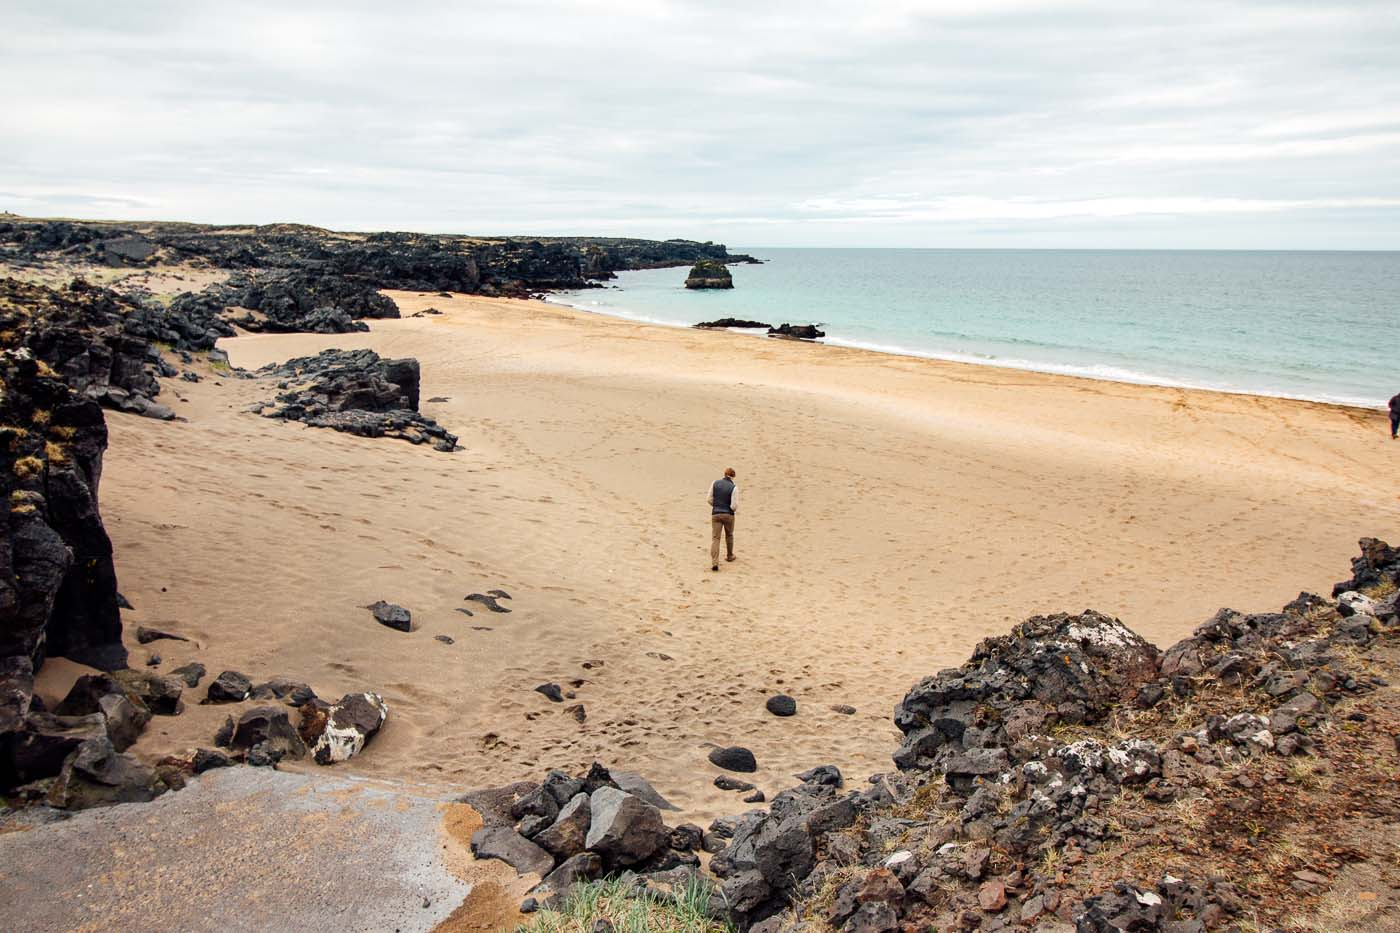 A man walking across a gold sand beach